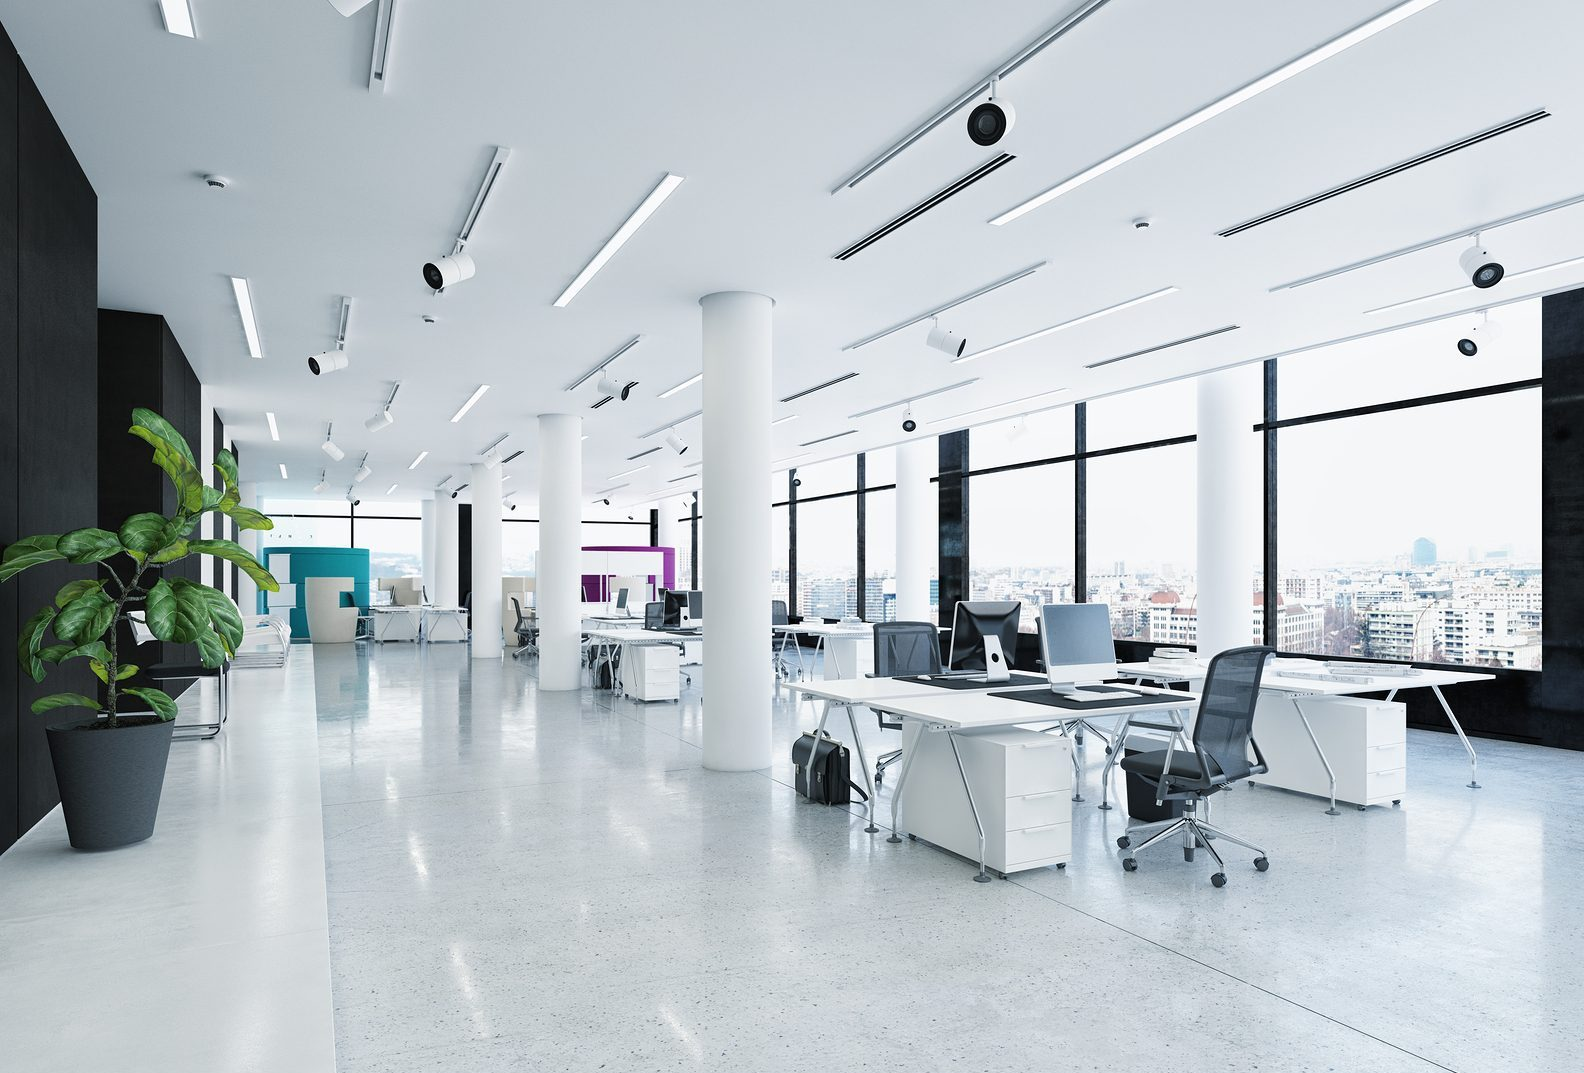 Commercial cleaning services for a clean and healthy workplace